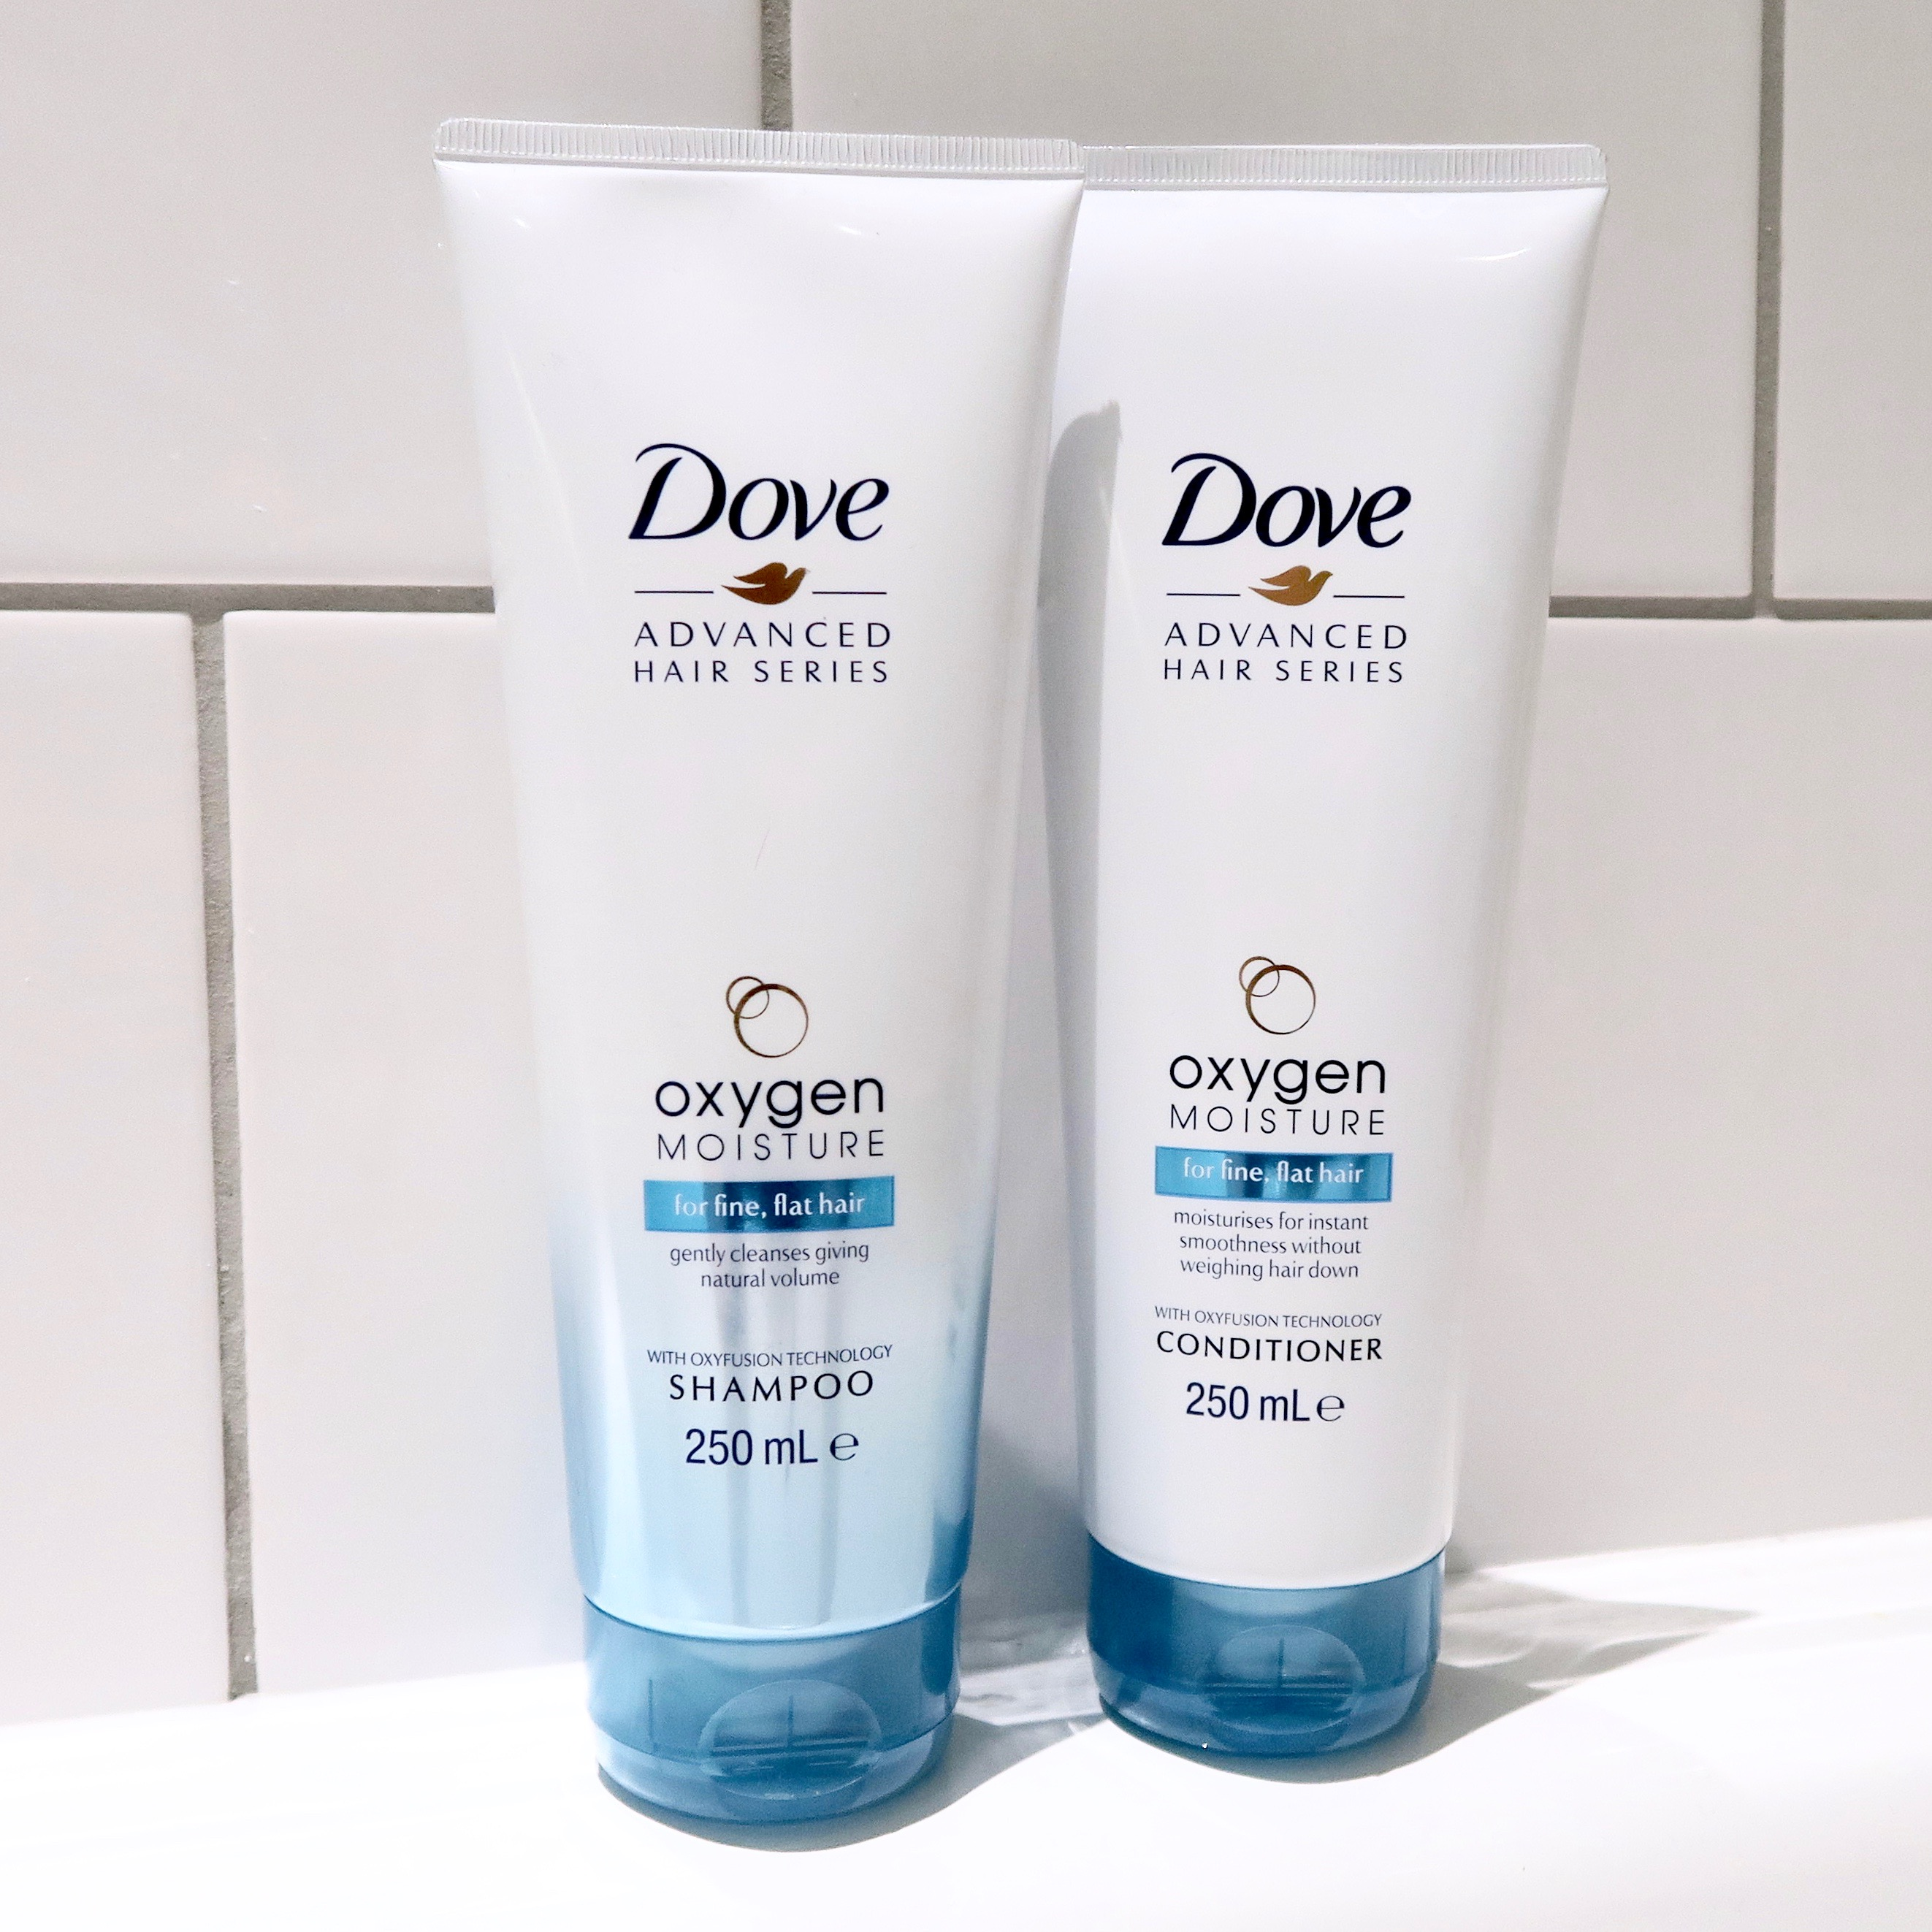 Friday Faves: A great new haircare duo that's perfect for my thin hair...